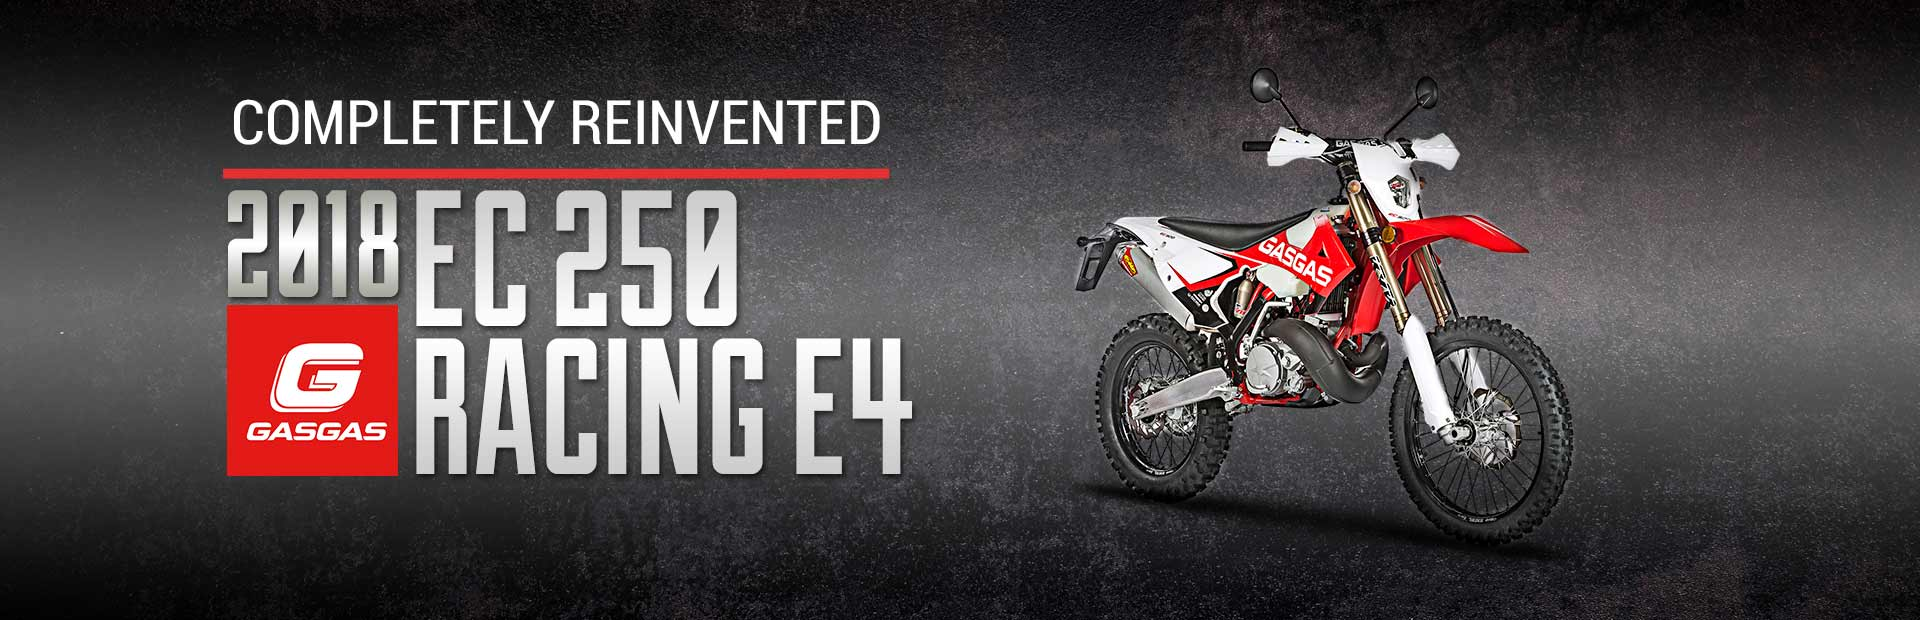 2018 GasGas EC 250 Racing E4: Click here to view the model.